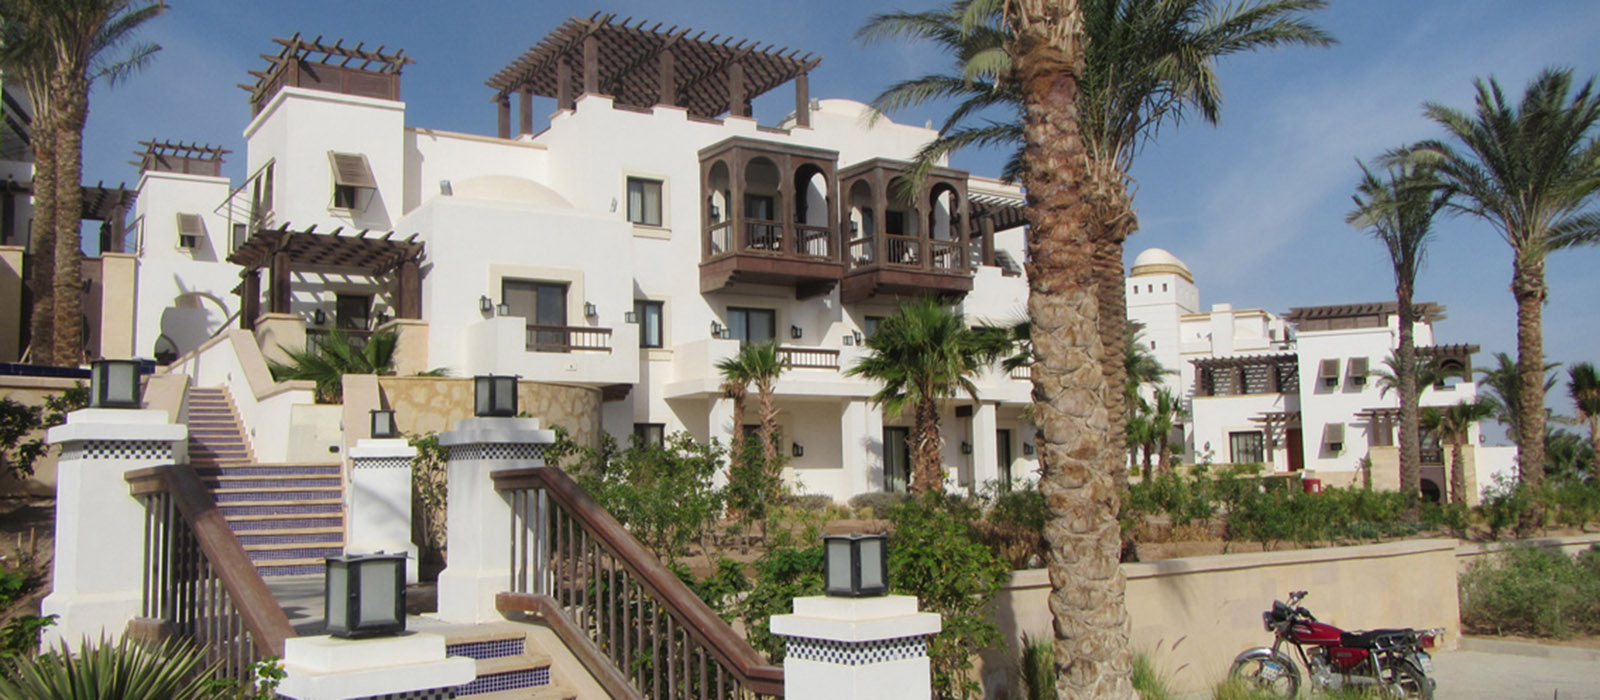 Ancient Sands Resort,El Gouna,Egypt,1 Bedroom Bedrooms,1 BathroomBathrooms,Apartment,Ancient Sands Resort,2,1027